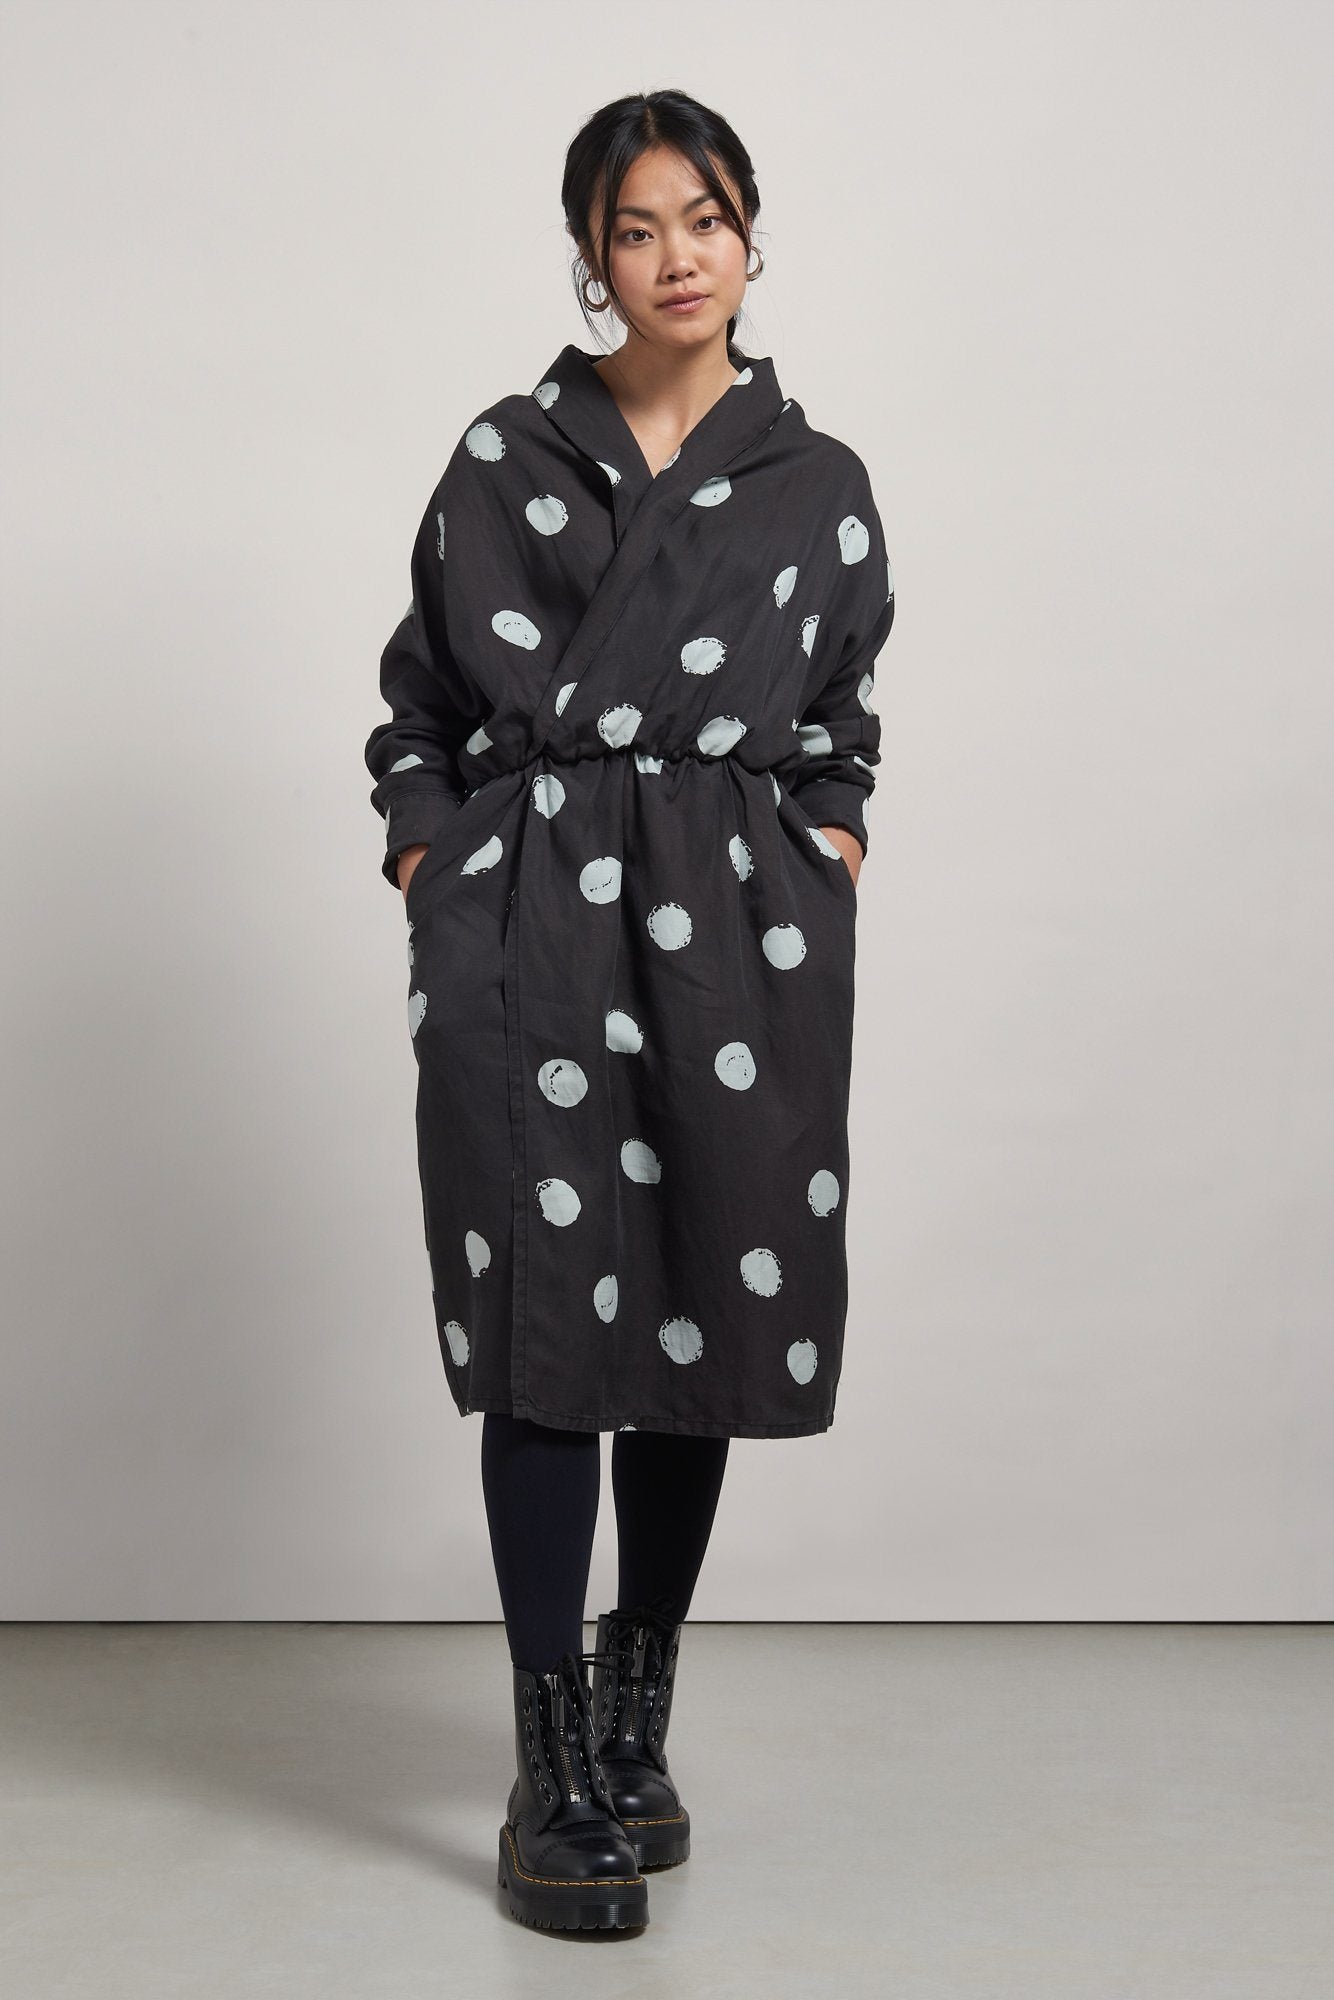 KUSAMA DOT Tencel Linen Wrap Dress - Komodo Fashion